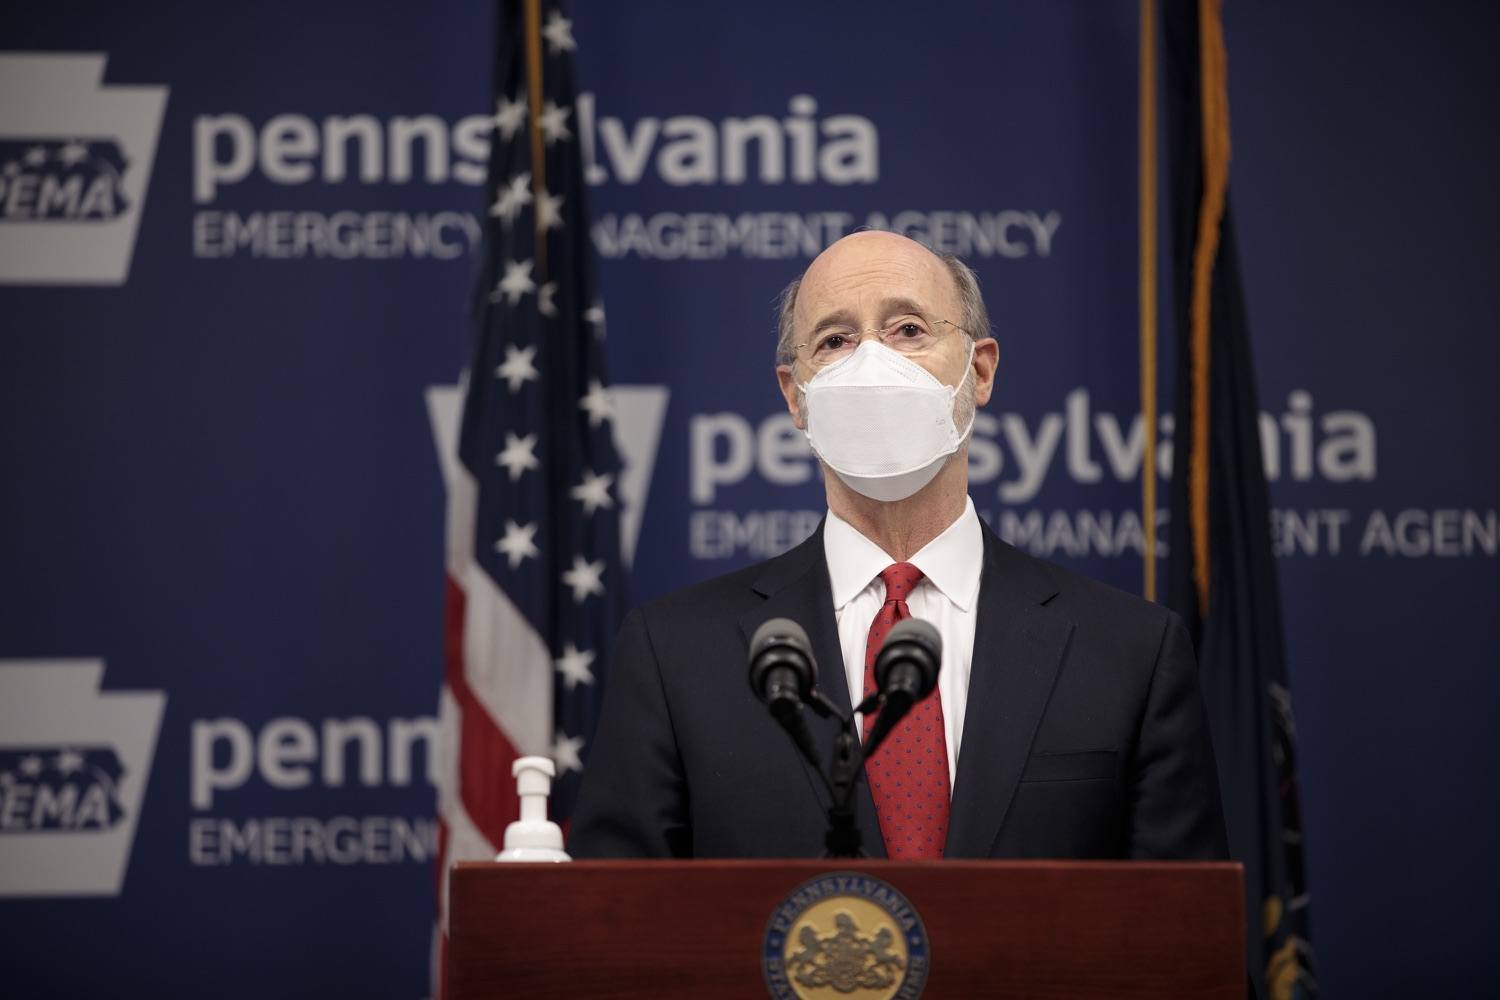 "<a href=""https://filesource.wostreaming.net/commonwealthofpa/photo/18540_gov_backtowork_dz_05.jpg"" target=""_blank"">⇣ Download Photo<br></a>Pennsylvania Governor Tom Wolf speaking at the press conference. The COVID-19 global pandemic has significantly affected Pennsylvania workers, businesses and communities. To bolster economic recovery efforts and position Pennsylvania for economic growth, Governor Tom Wolf today unveiled his Back to Work PA plan.   Harrisburg, PA  February 22, 2021"